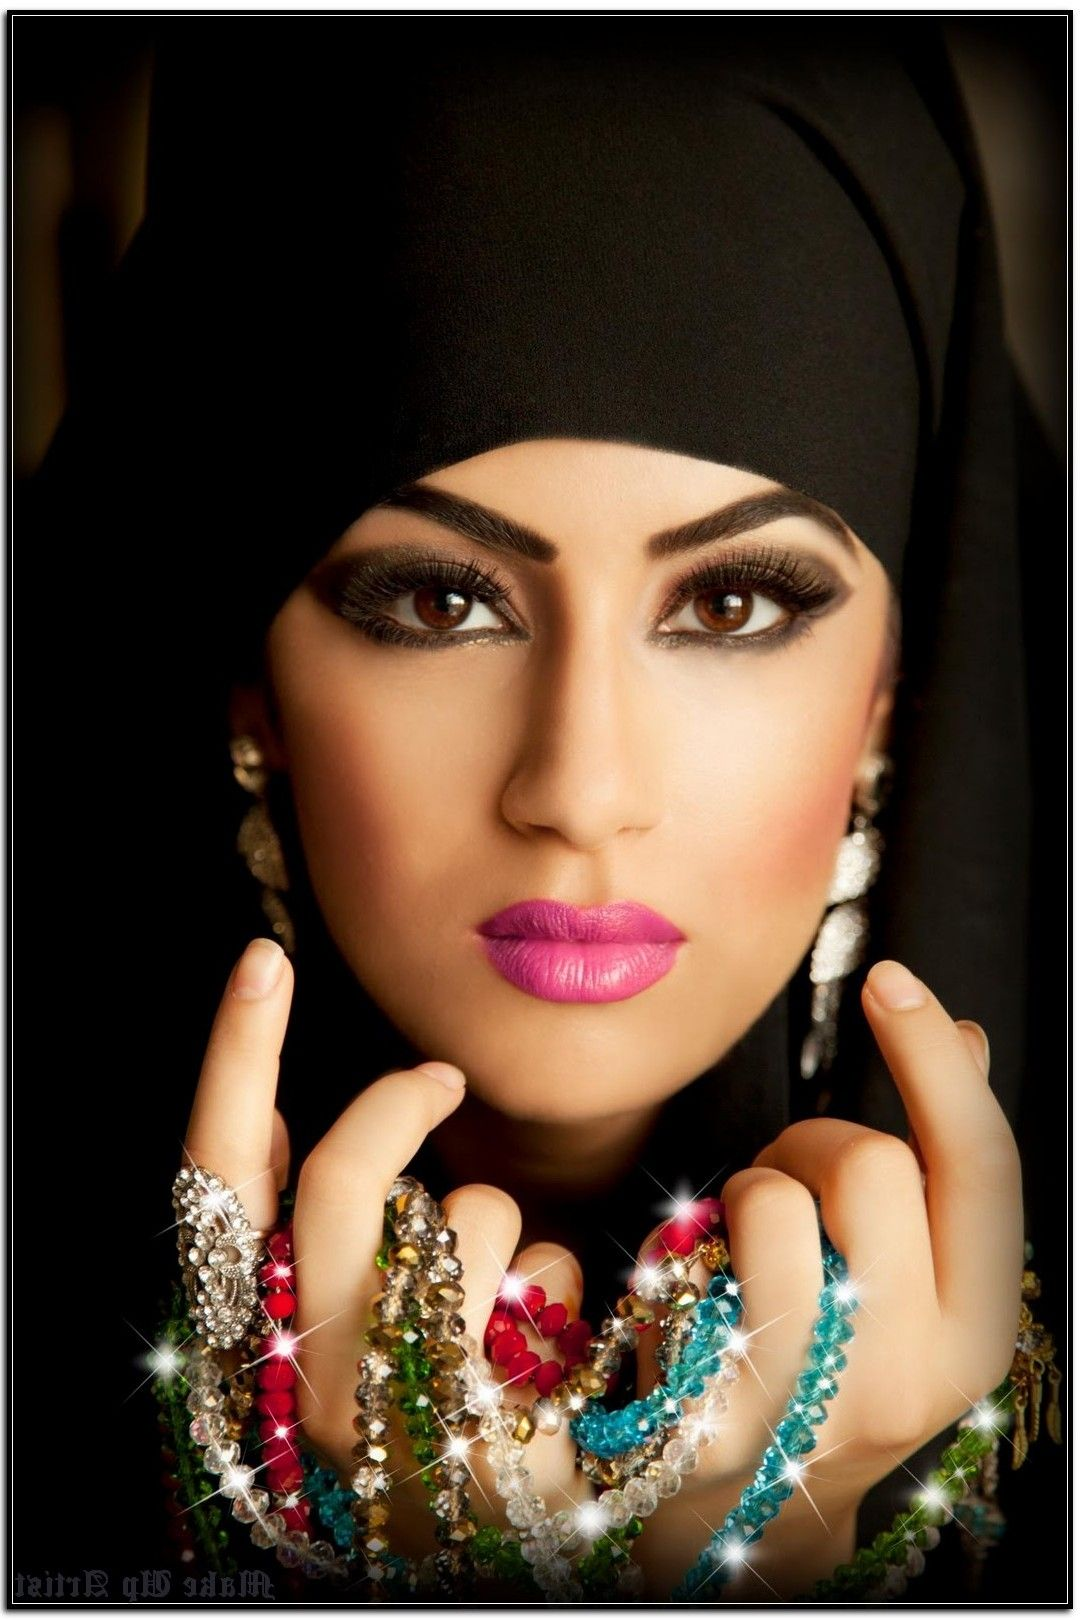 Make Up Artist 15 Minutes A Day To Grow Your Business